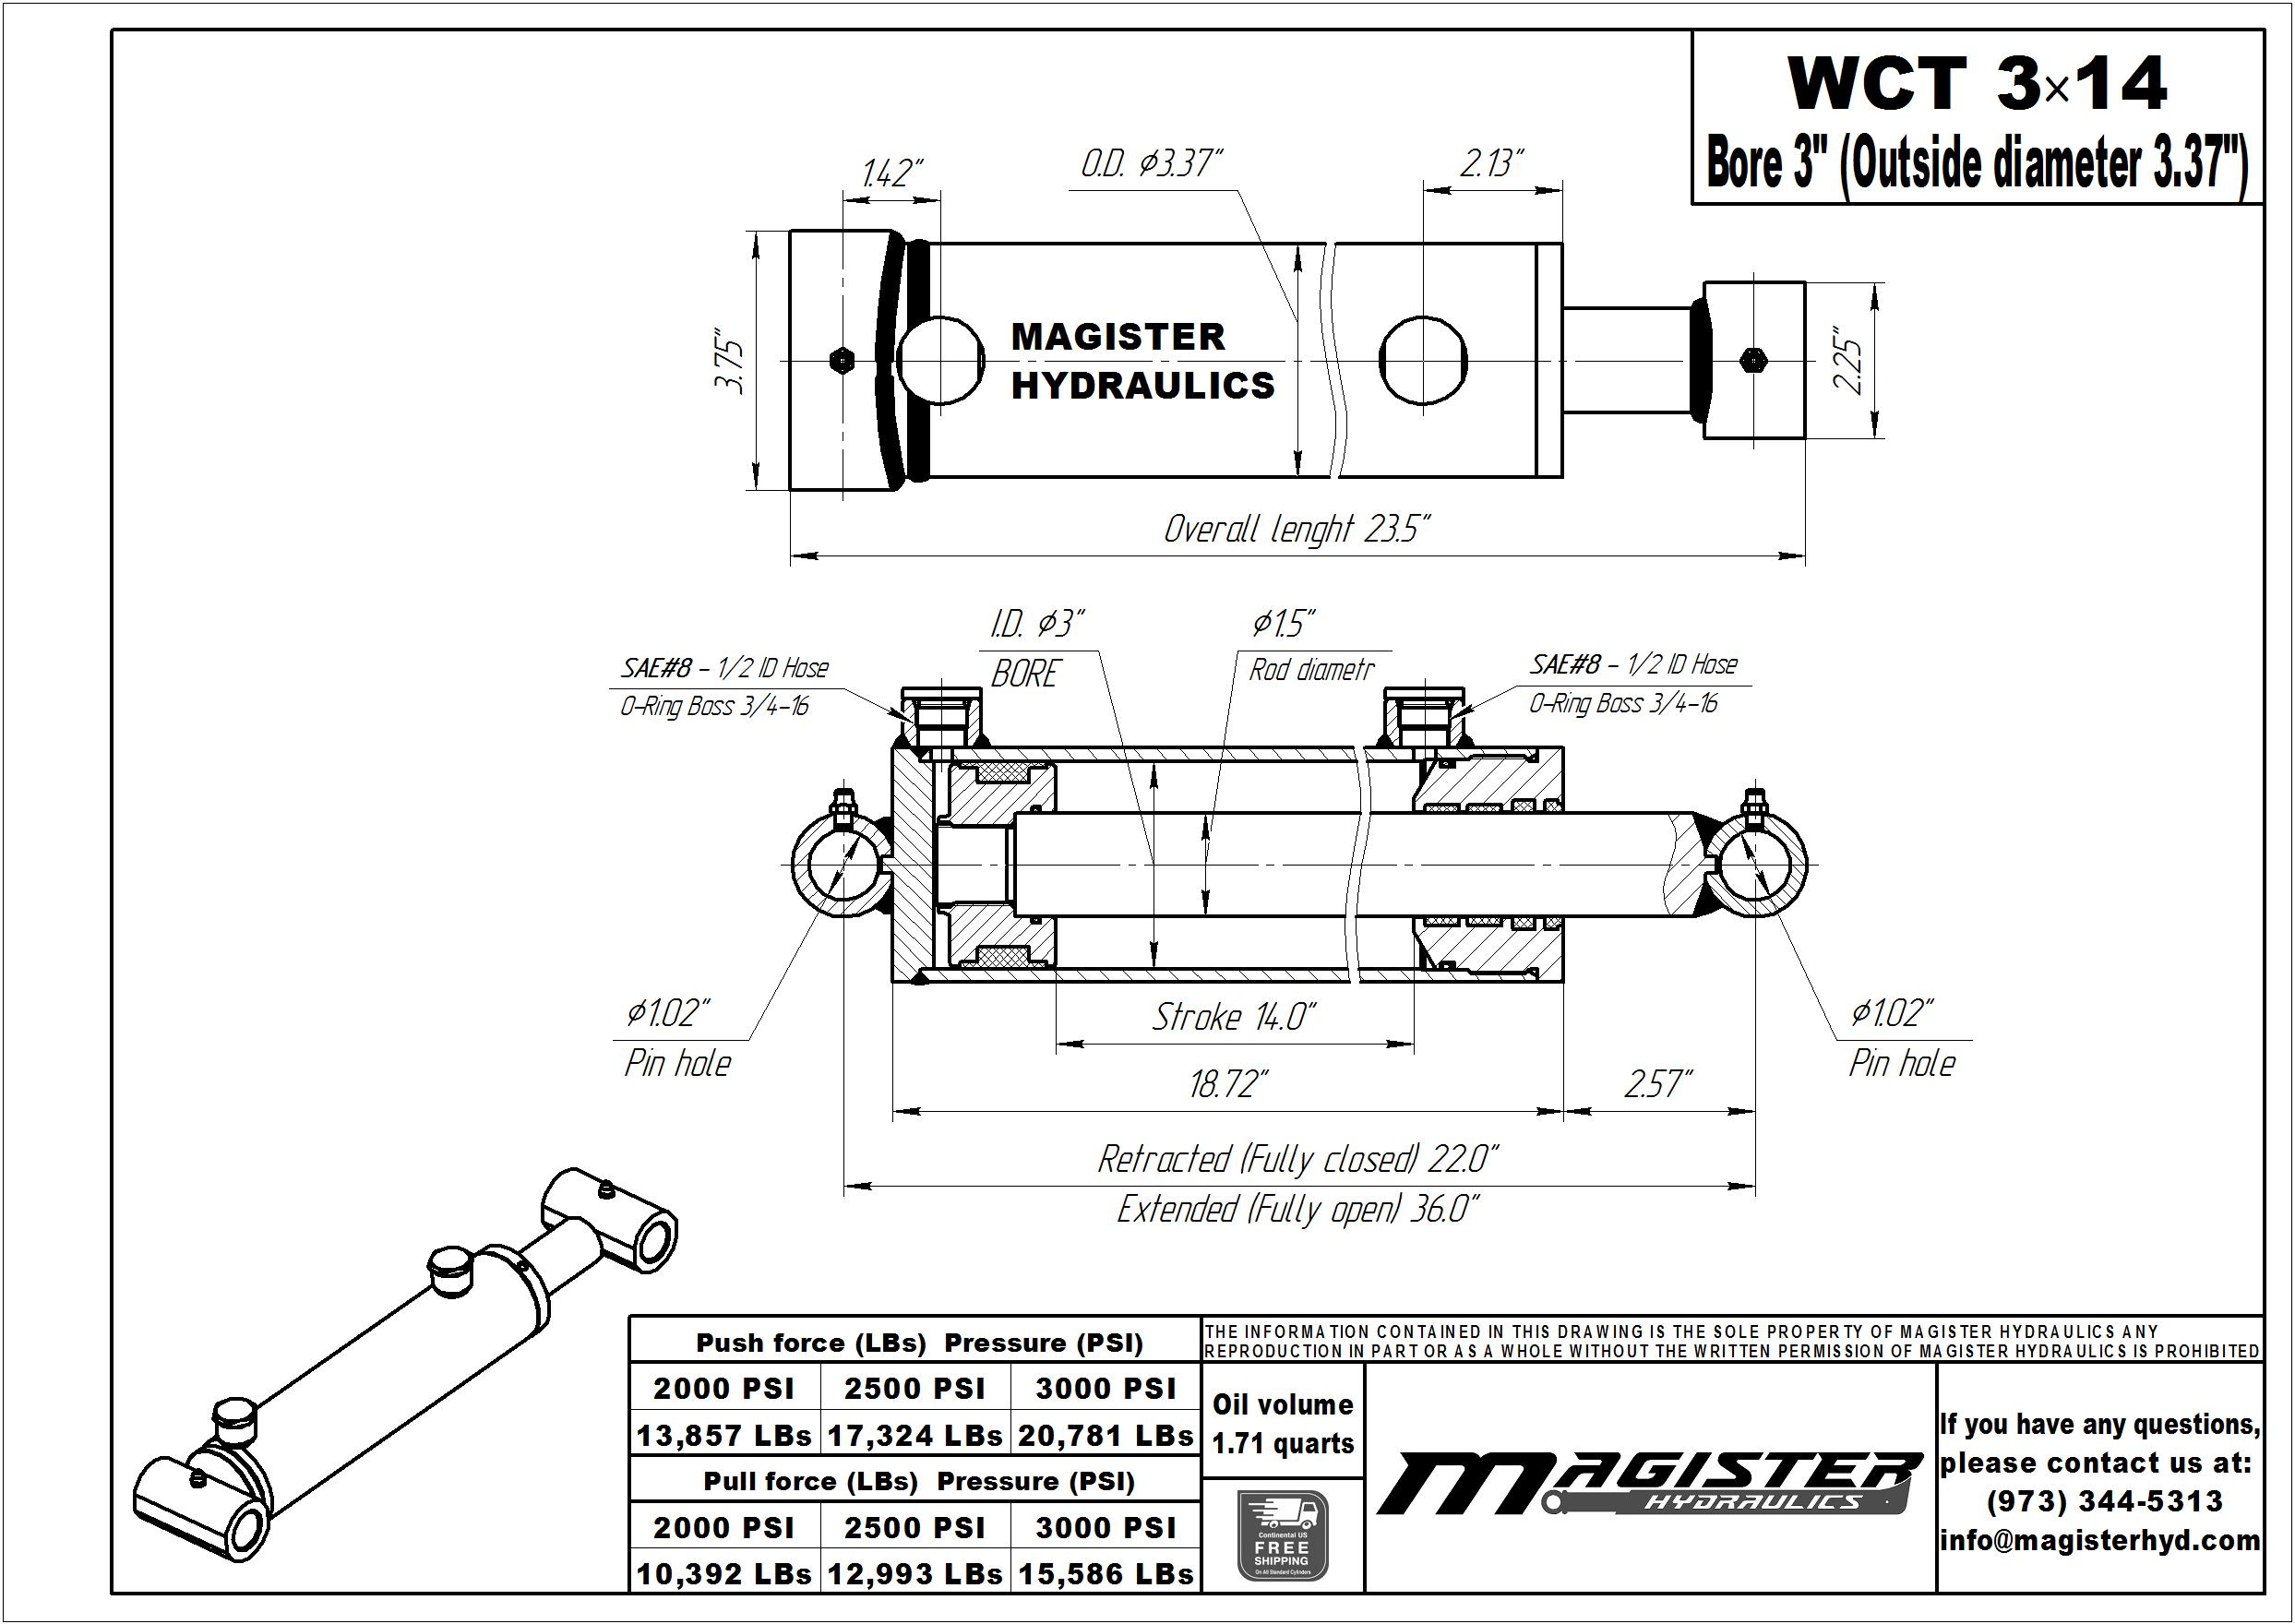 3 bore x 14 stroke hydraulic cylinder, welded cross tube double acting cylinder | Magister Hydraulics